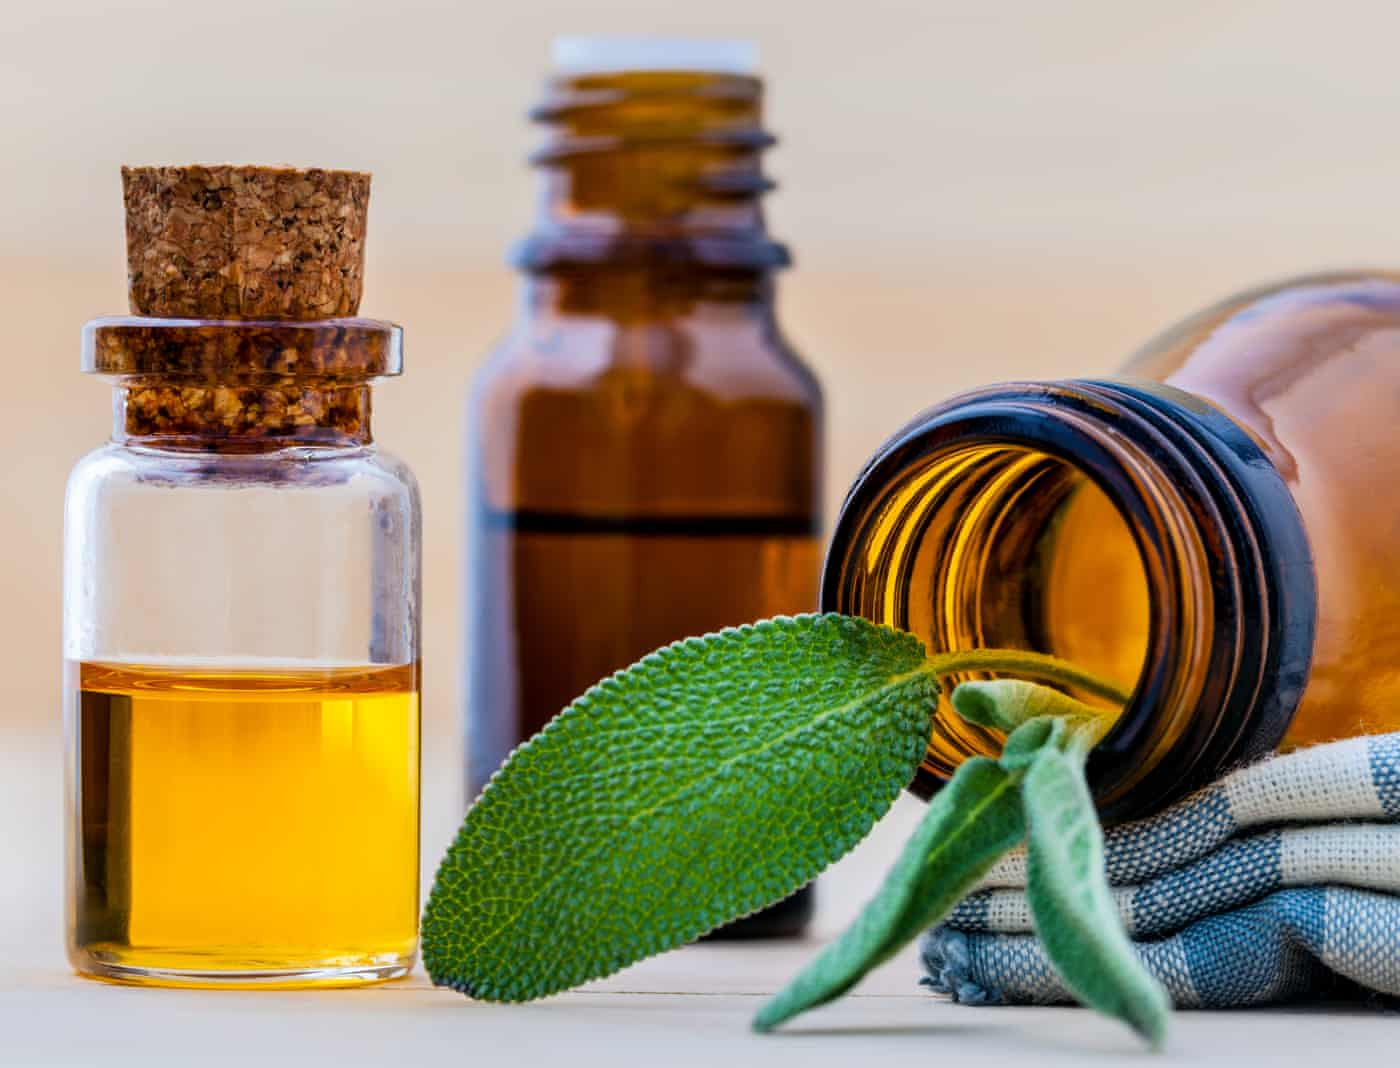 Naturopaths are snake-oil salespeople masquerading as health professionals